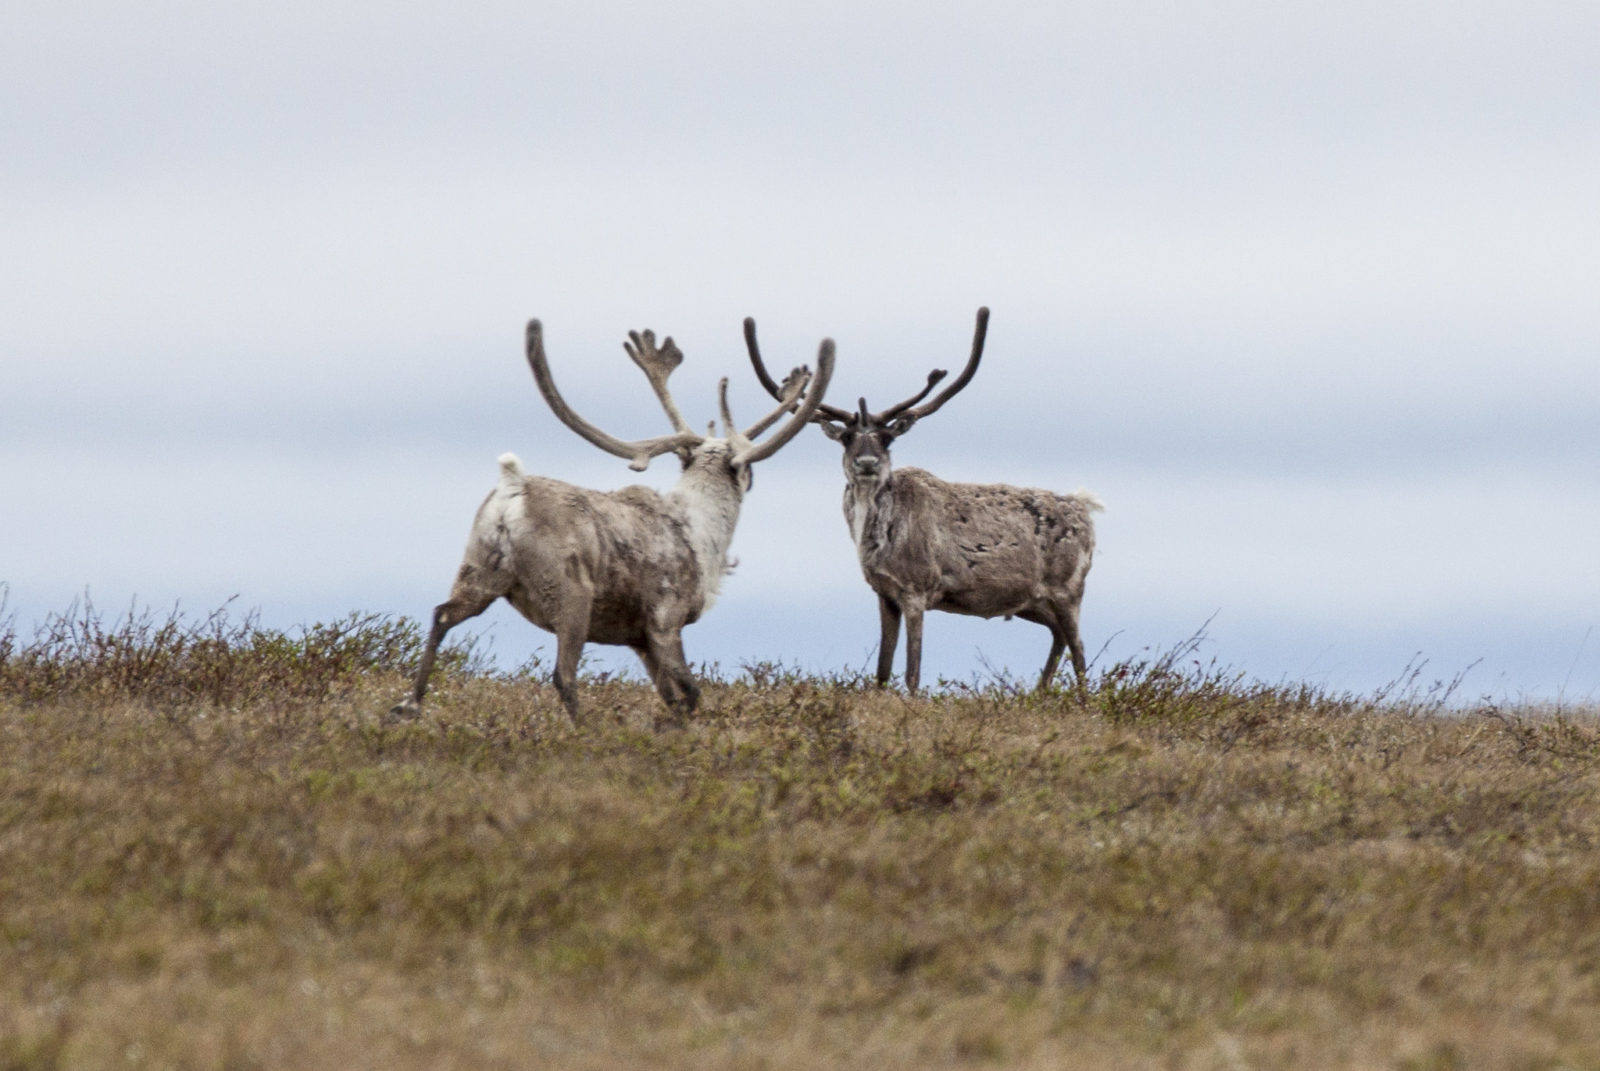 Court stops massive Willow project, pausing the threat on winter work on Teshekpuk caribou and traditional hunting.